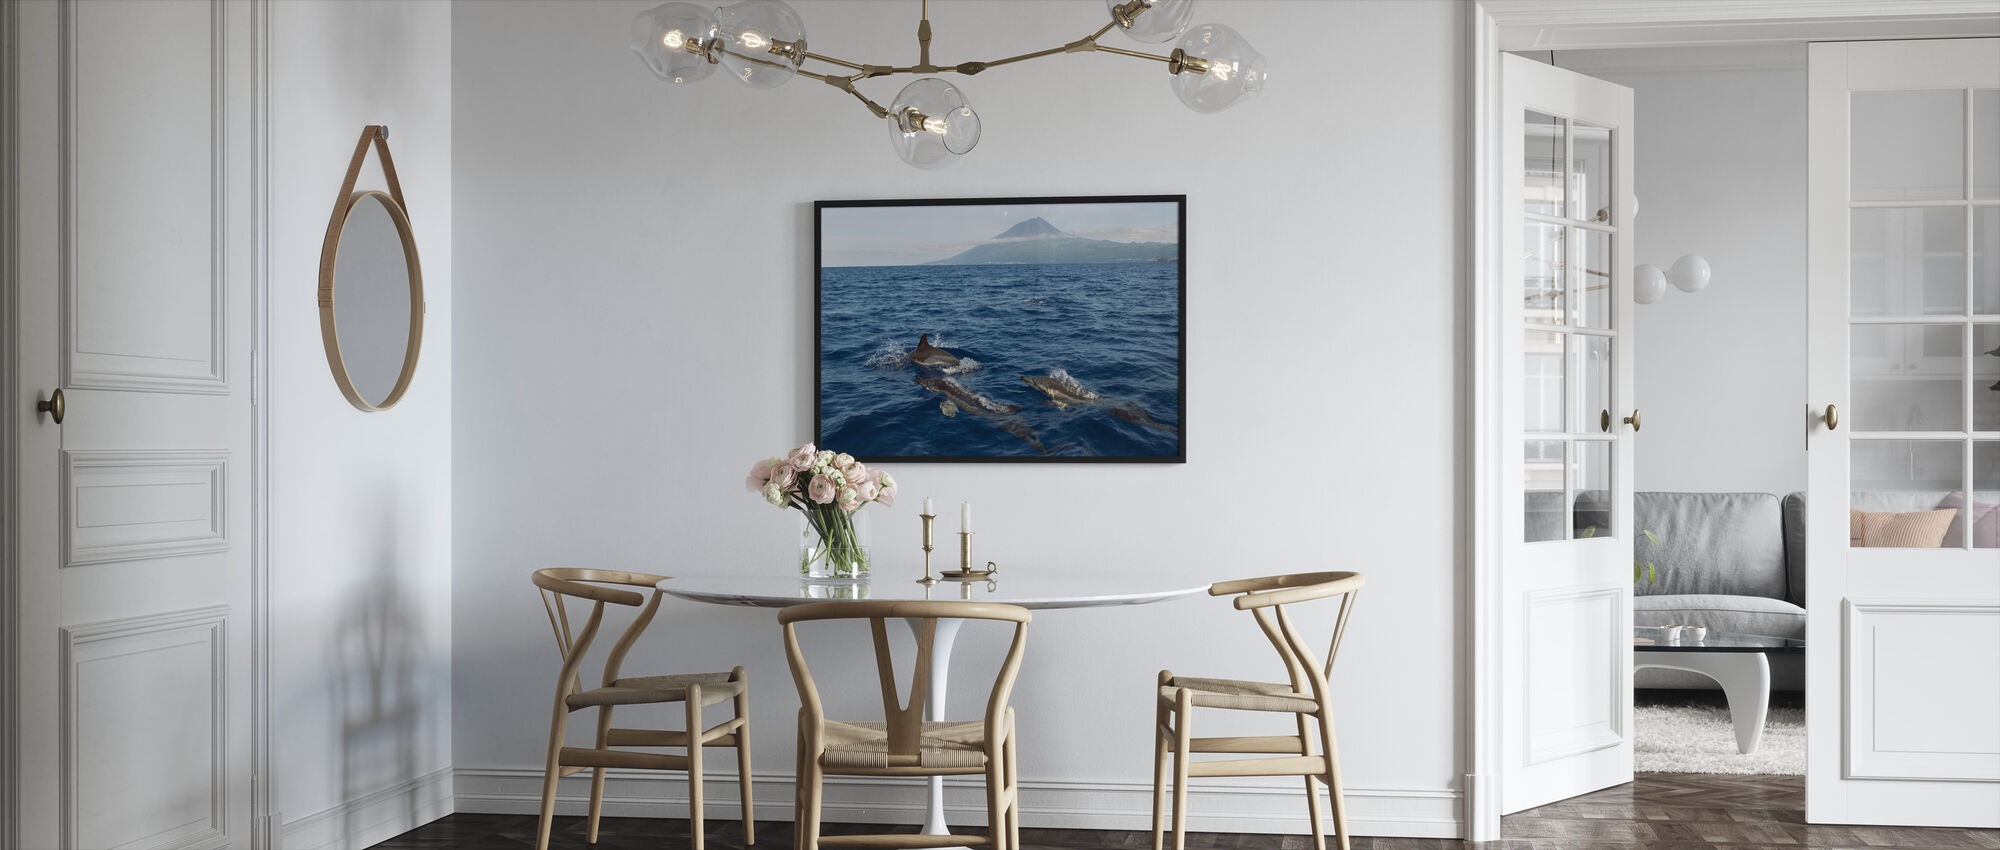 Dolphins in the Azores - Framed print - Kitchen